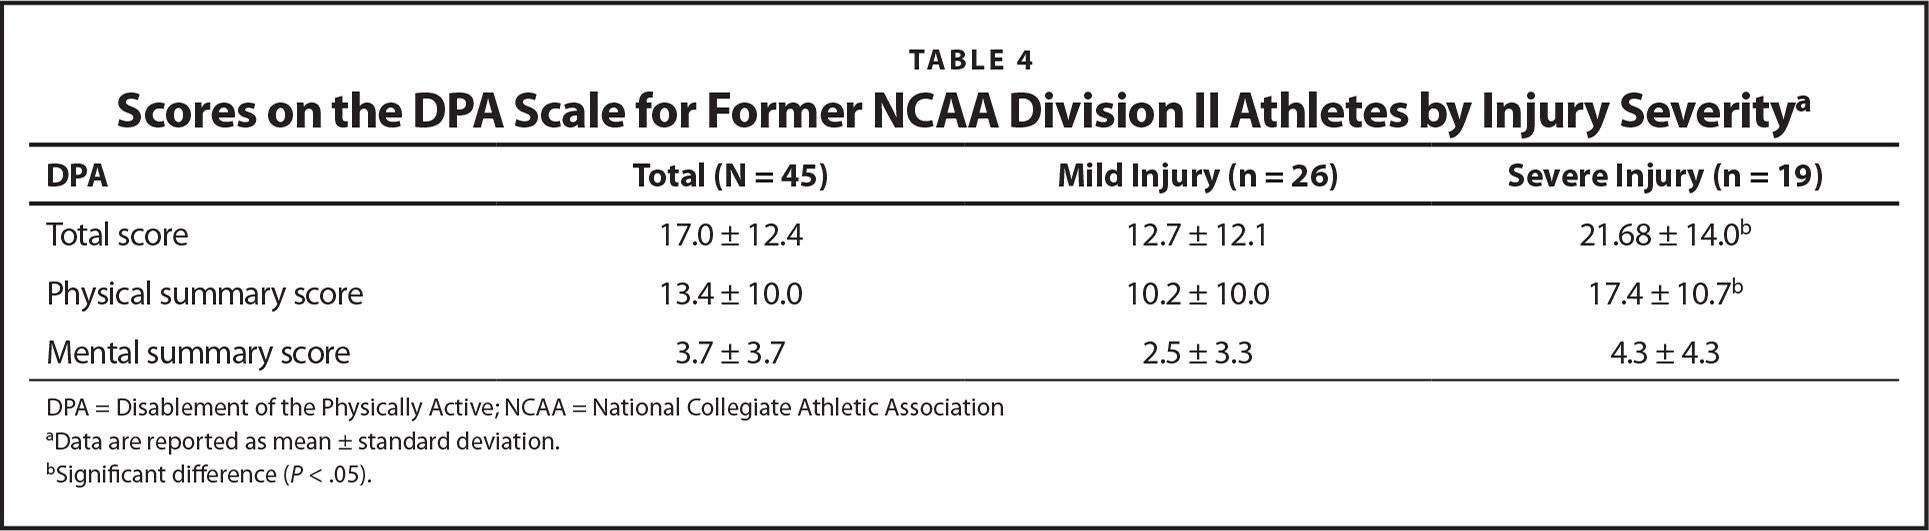 Scores on the DPA Scale for Former NCAA Division II Athletes by Injury Severitya